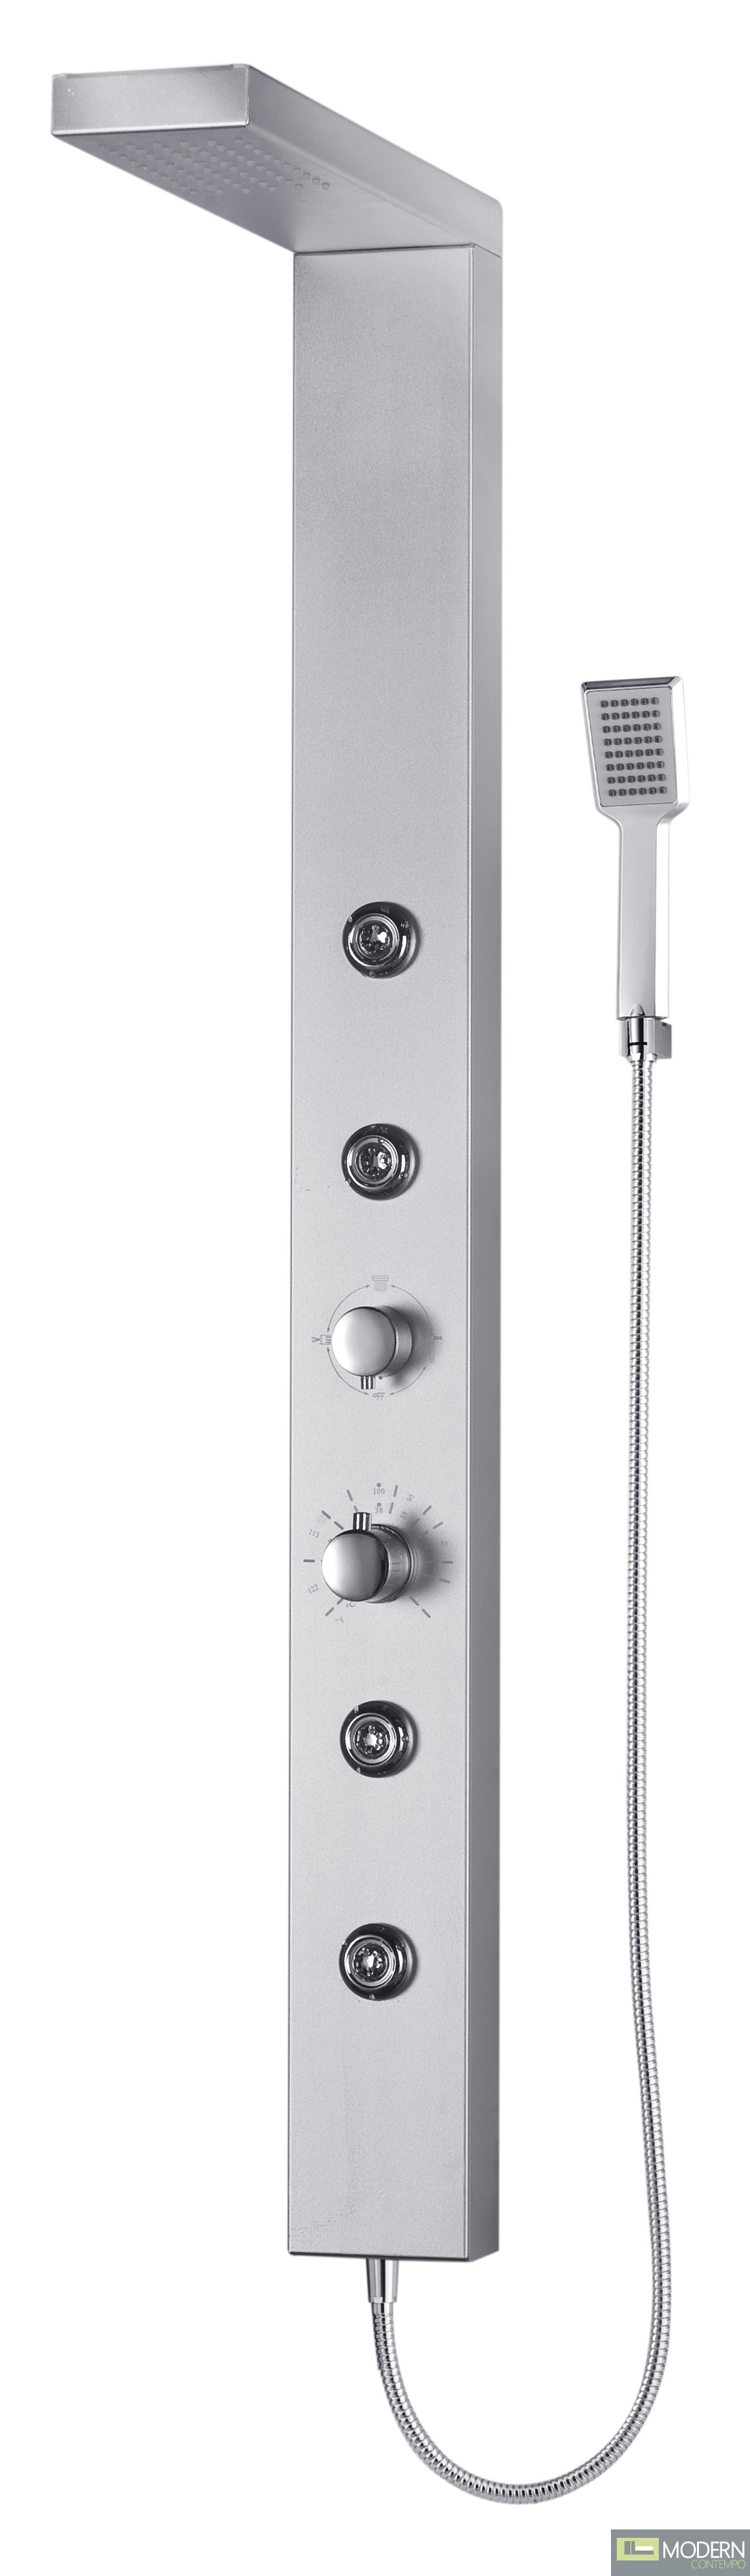 Shower Panel System with Four Body Jets in Aluminum